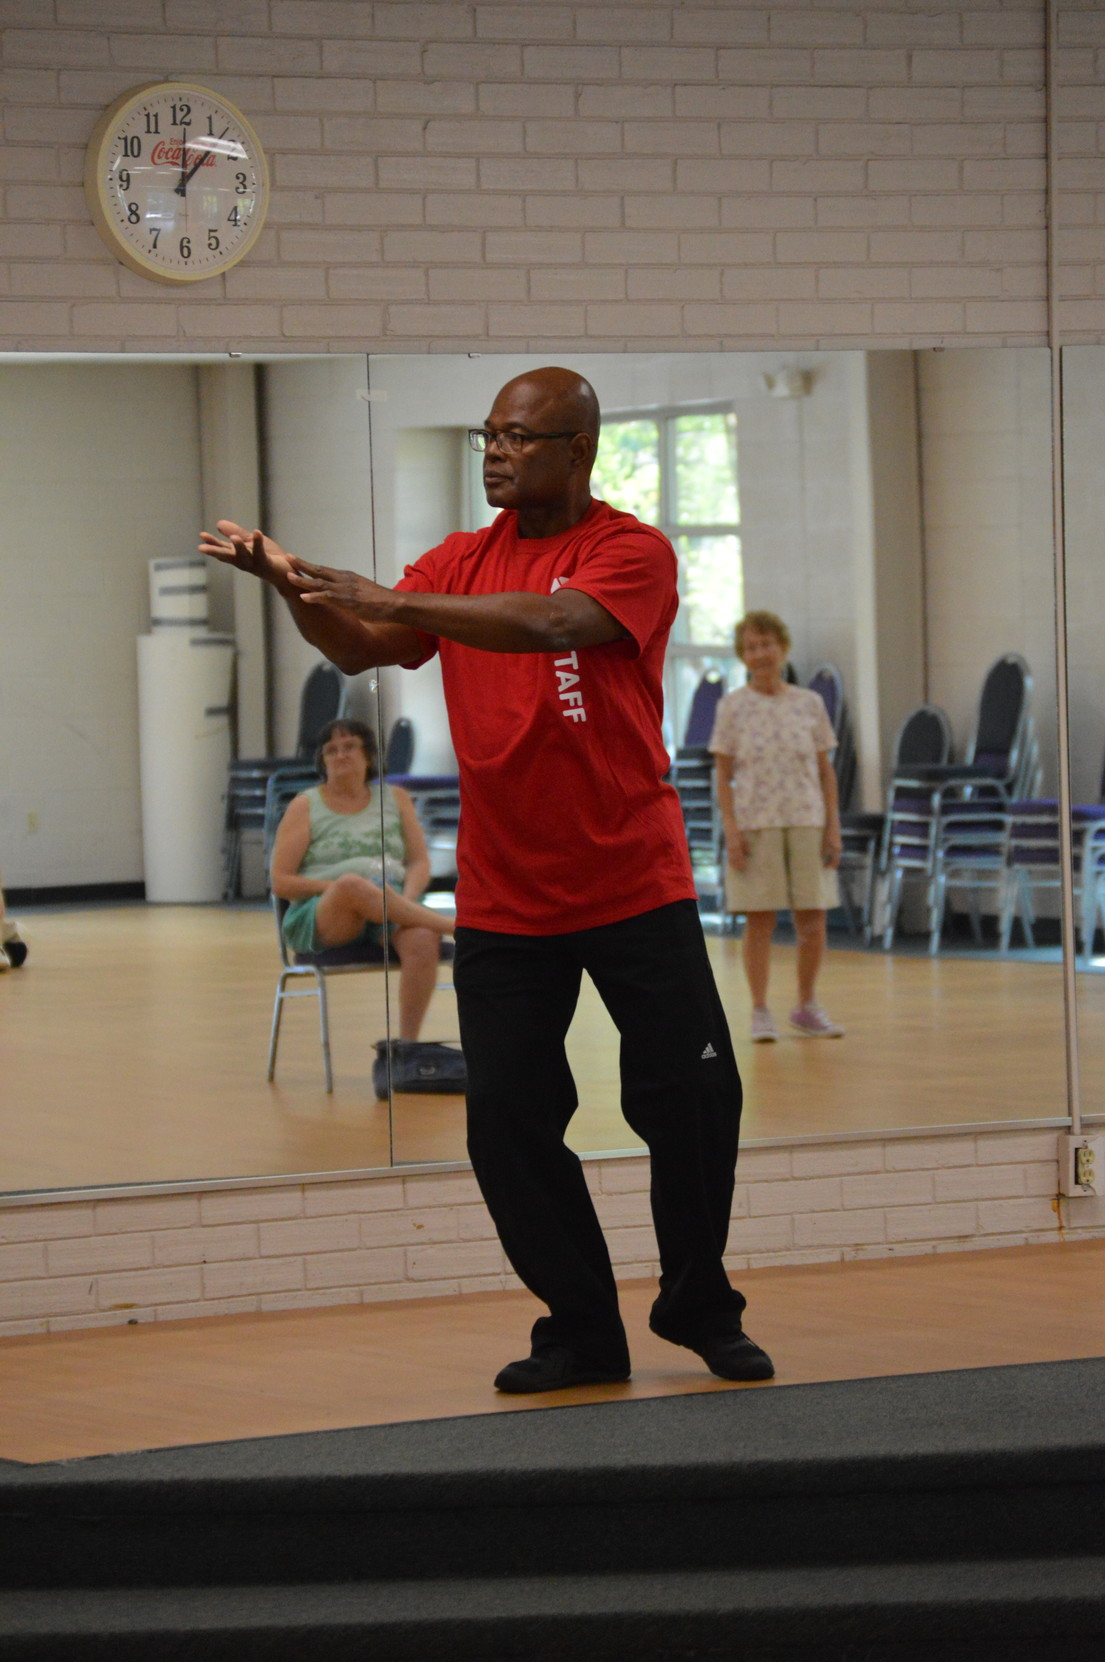 PHOTOS BY ADRIENNE SARVIS / THE SUMTER ITEMJoseph Whiting, director of health promotion, education and behavior at Phoenix Health Education and Wellness Center, shows his students Tai Chi movements during his Tai Chi class at Sumter Family YMCA on Friday.